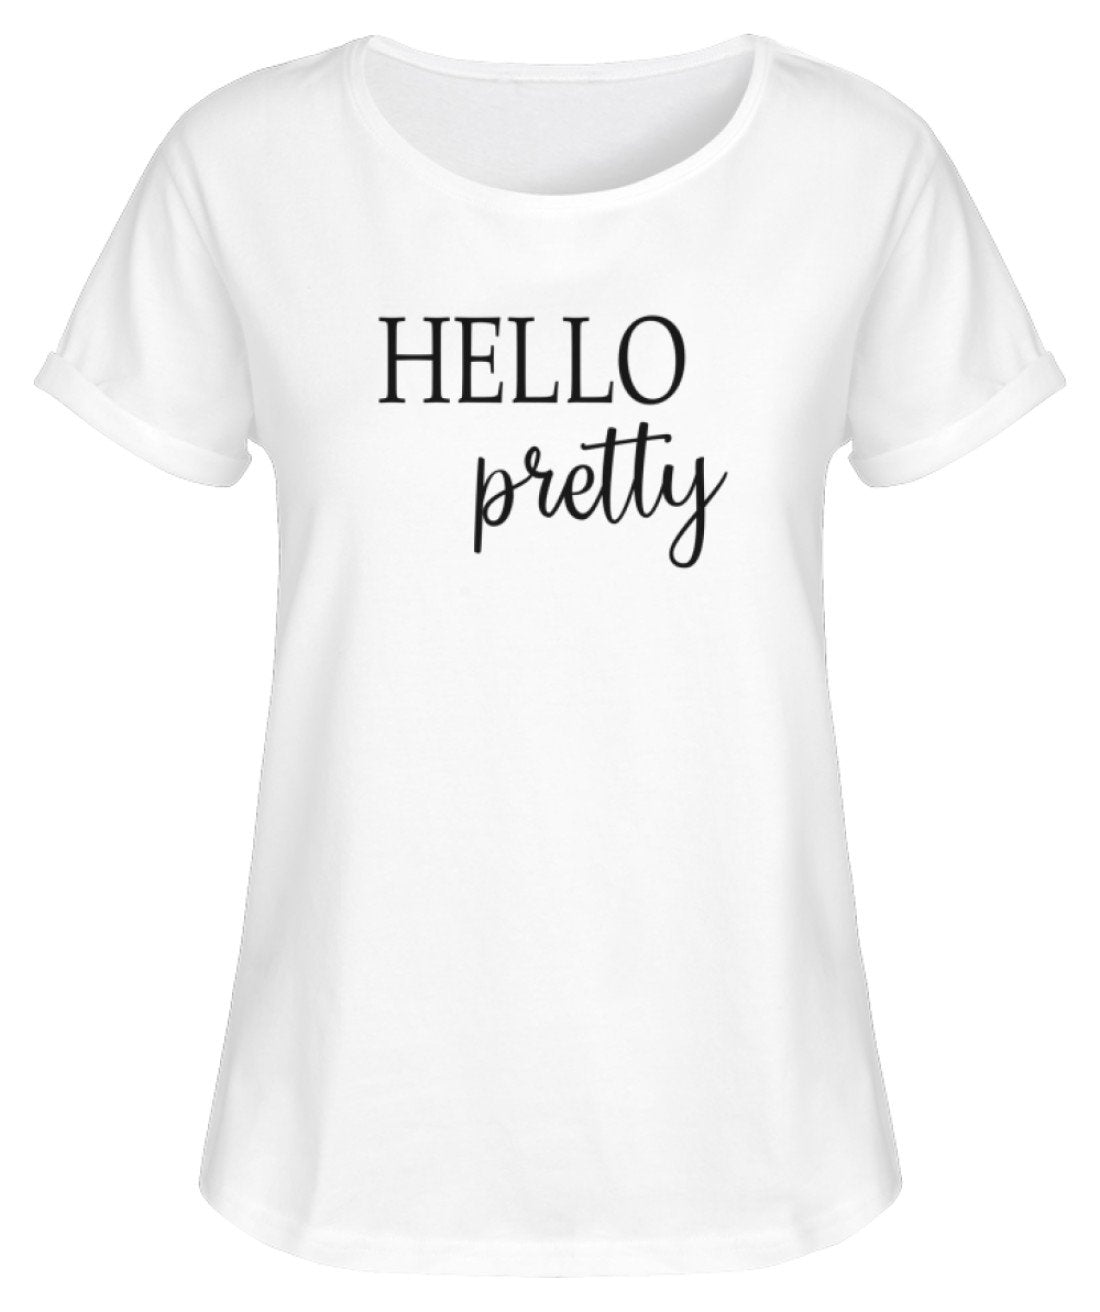 PM FASHION WOMEN® Hello pretty  - Damen RollUp Shirt - PM FASHION®